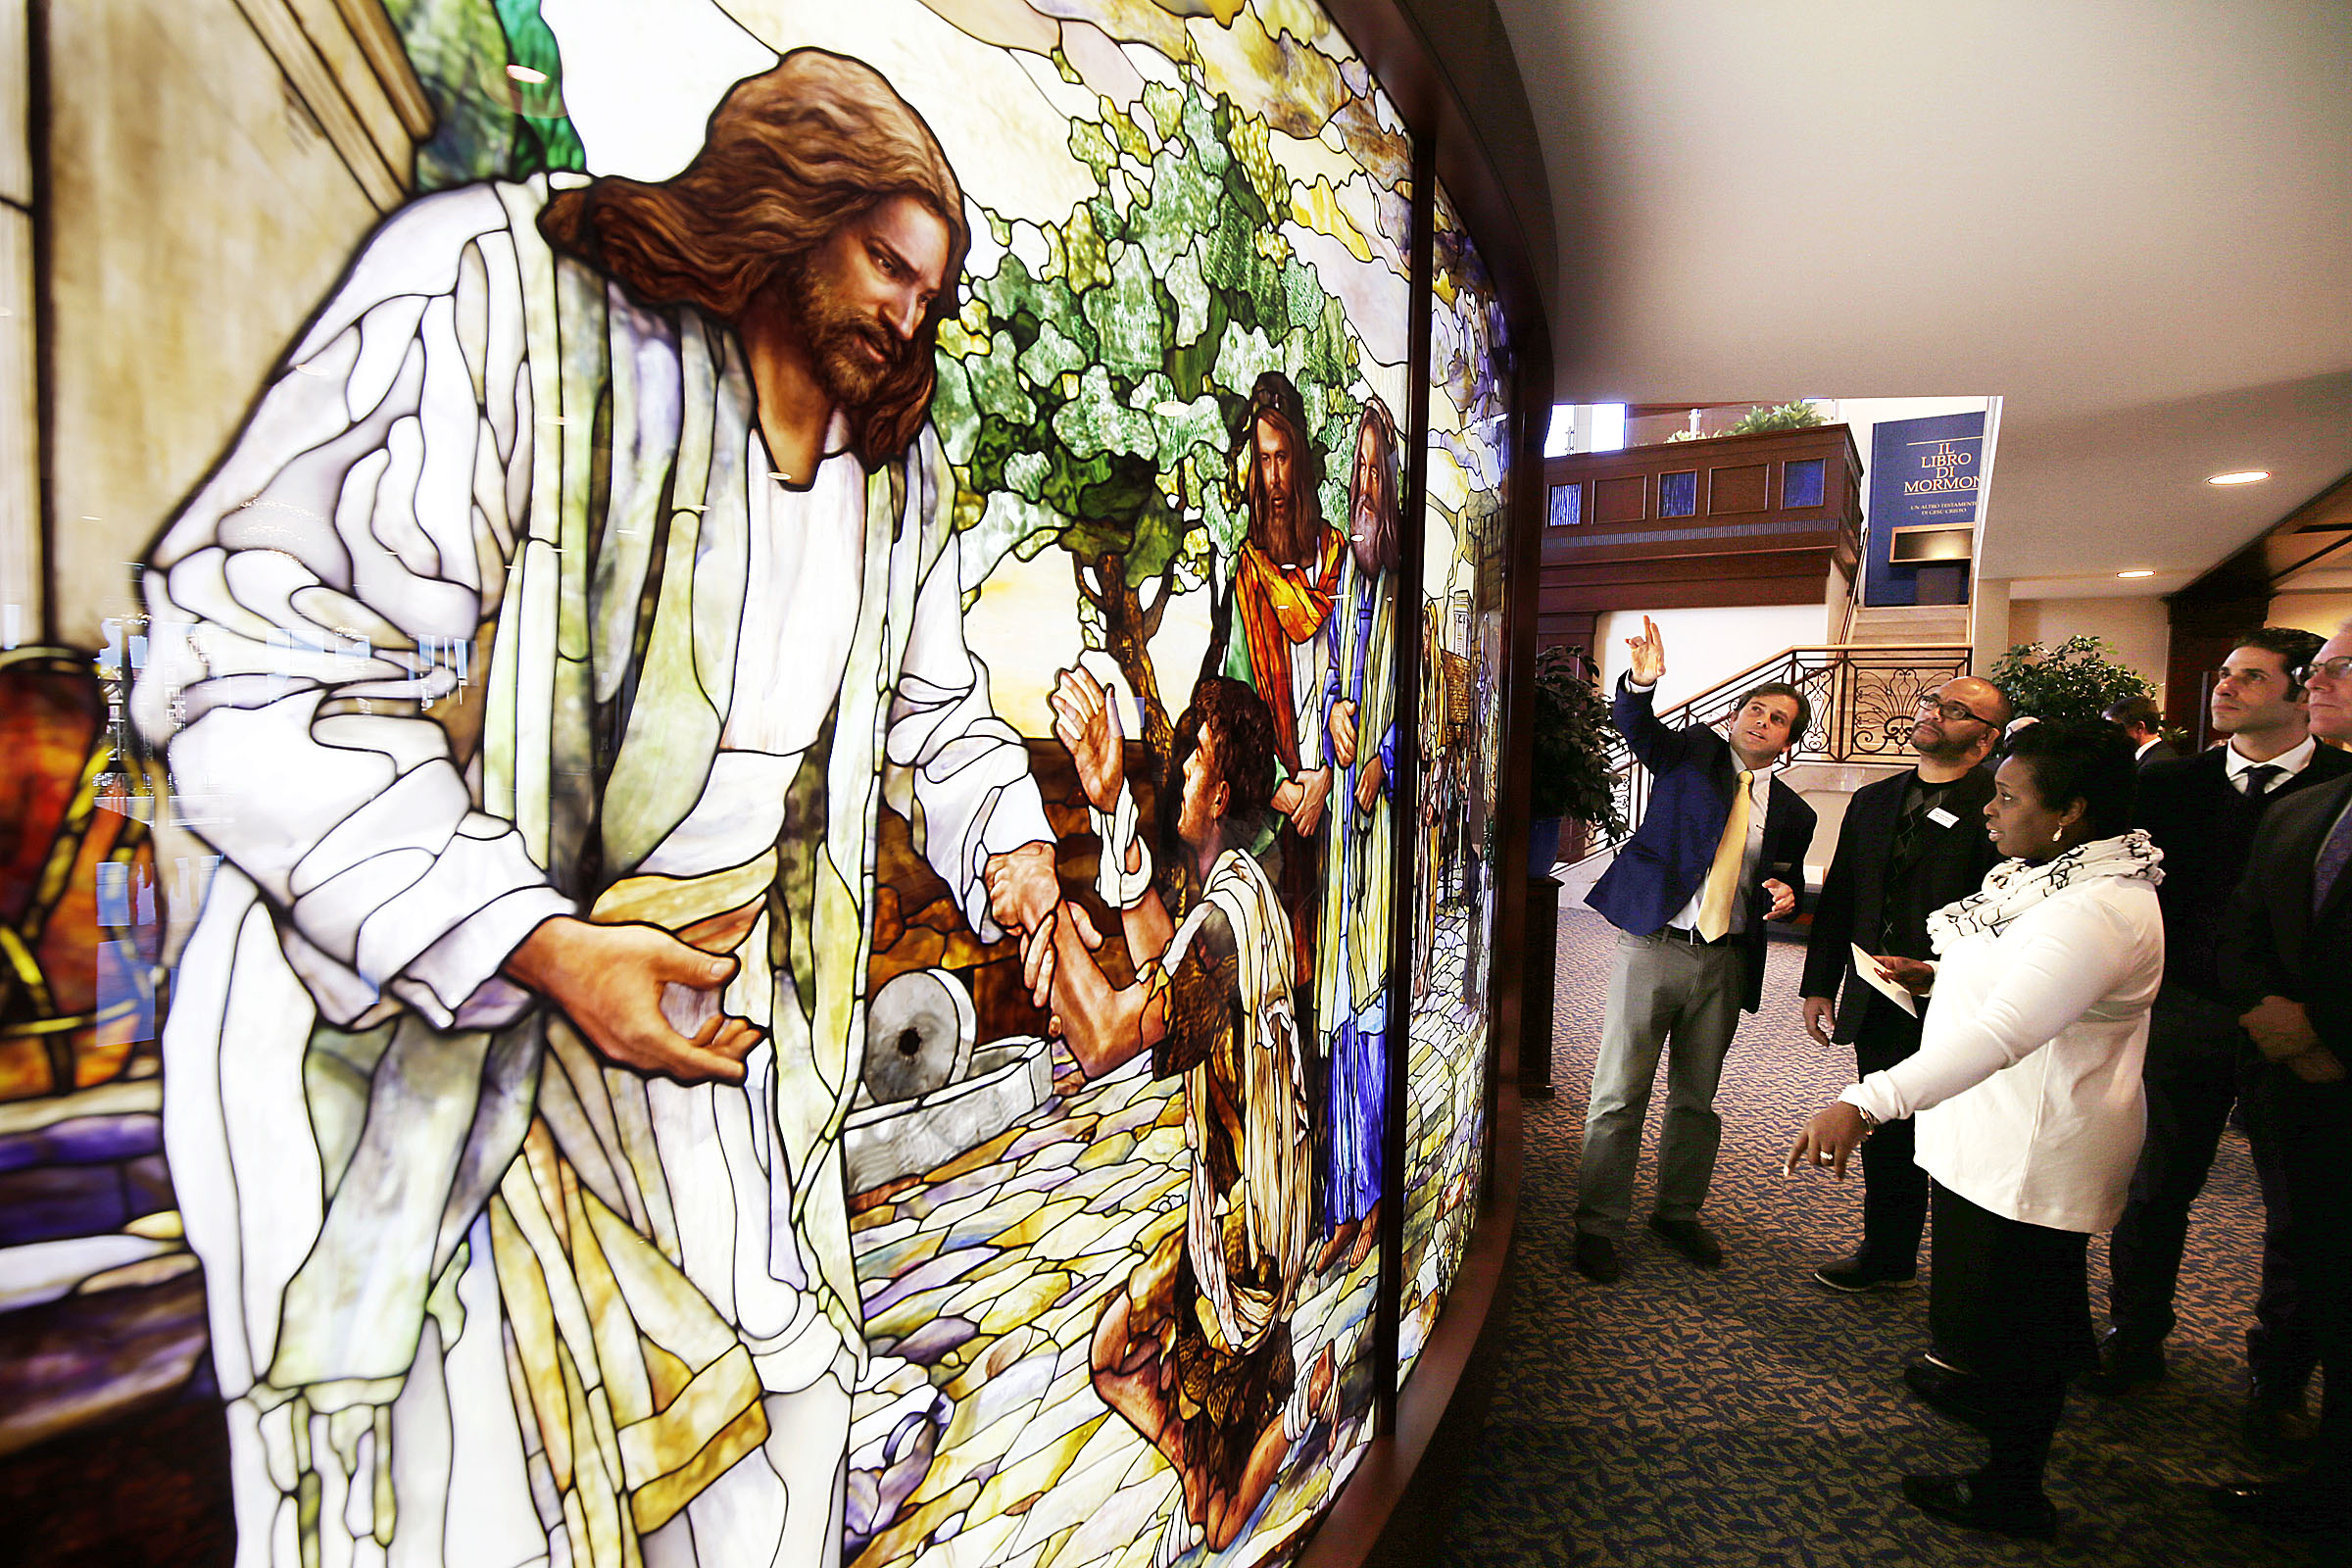 Tom Holdman, center left, of Holdman Studios, discusses his company's stained glass work with Pastor Chris Zacharias and his wife, Kim, of the John Wesley A.M.E. Zion Church during a tour of the Rome Italy Temple and the Rome Italy Temple Visitors' Center on Tuesday, Jan. 15, 2019.